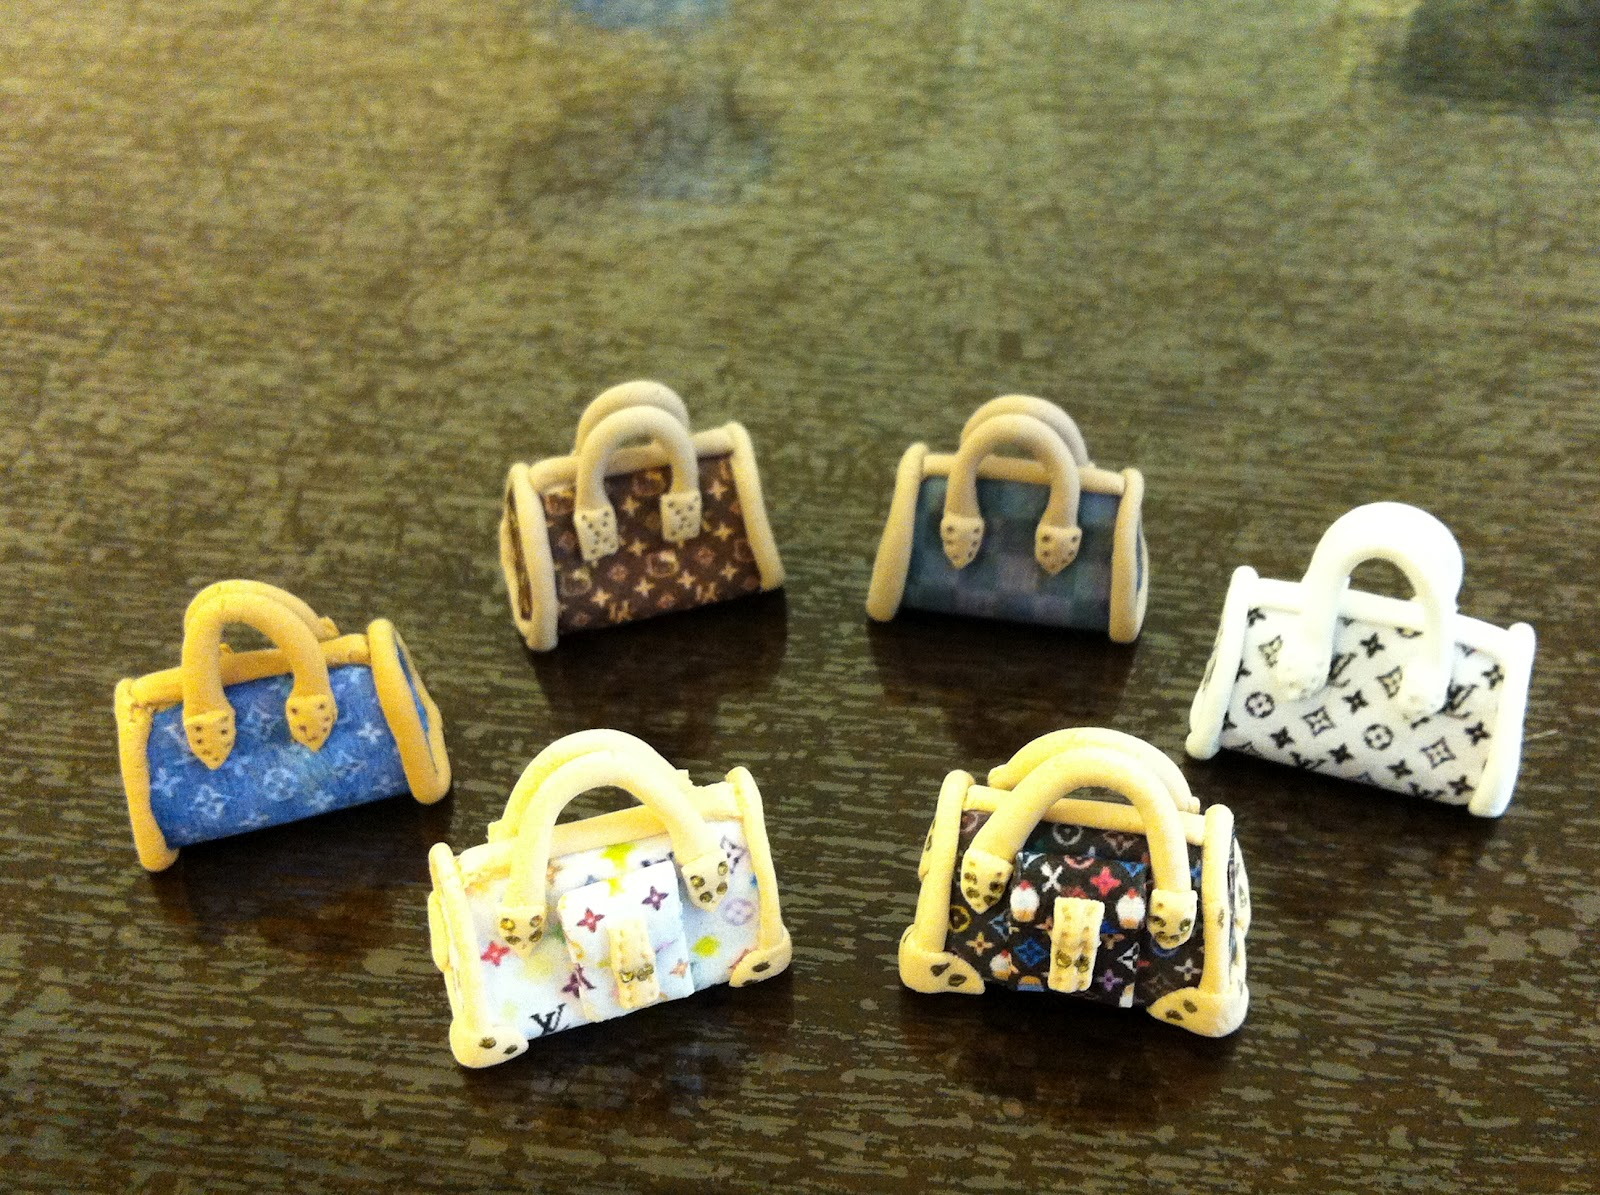 My paper clay projects designer handbags part 6 for Paper clay projects